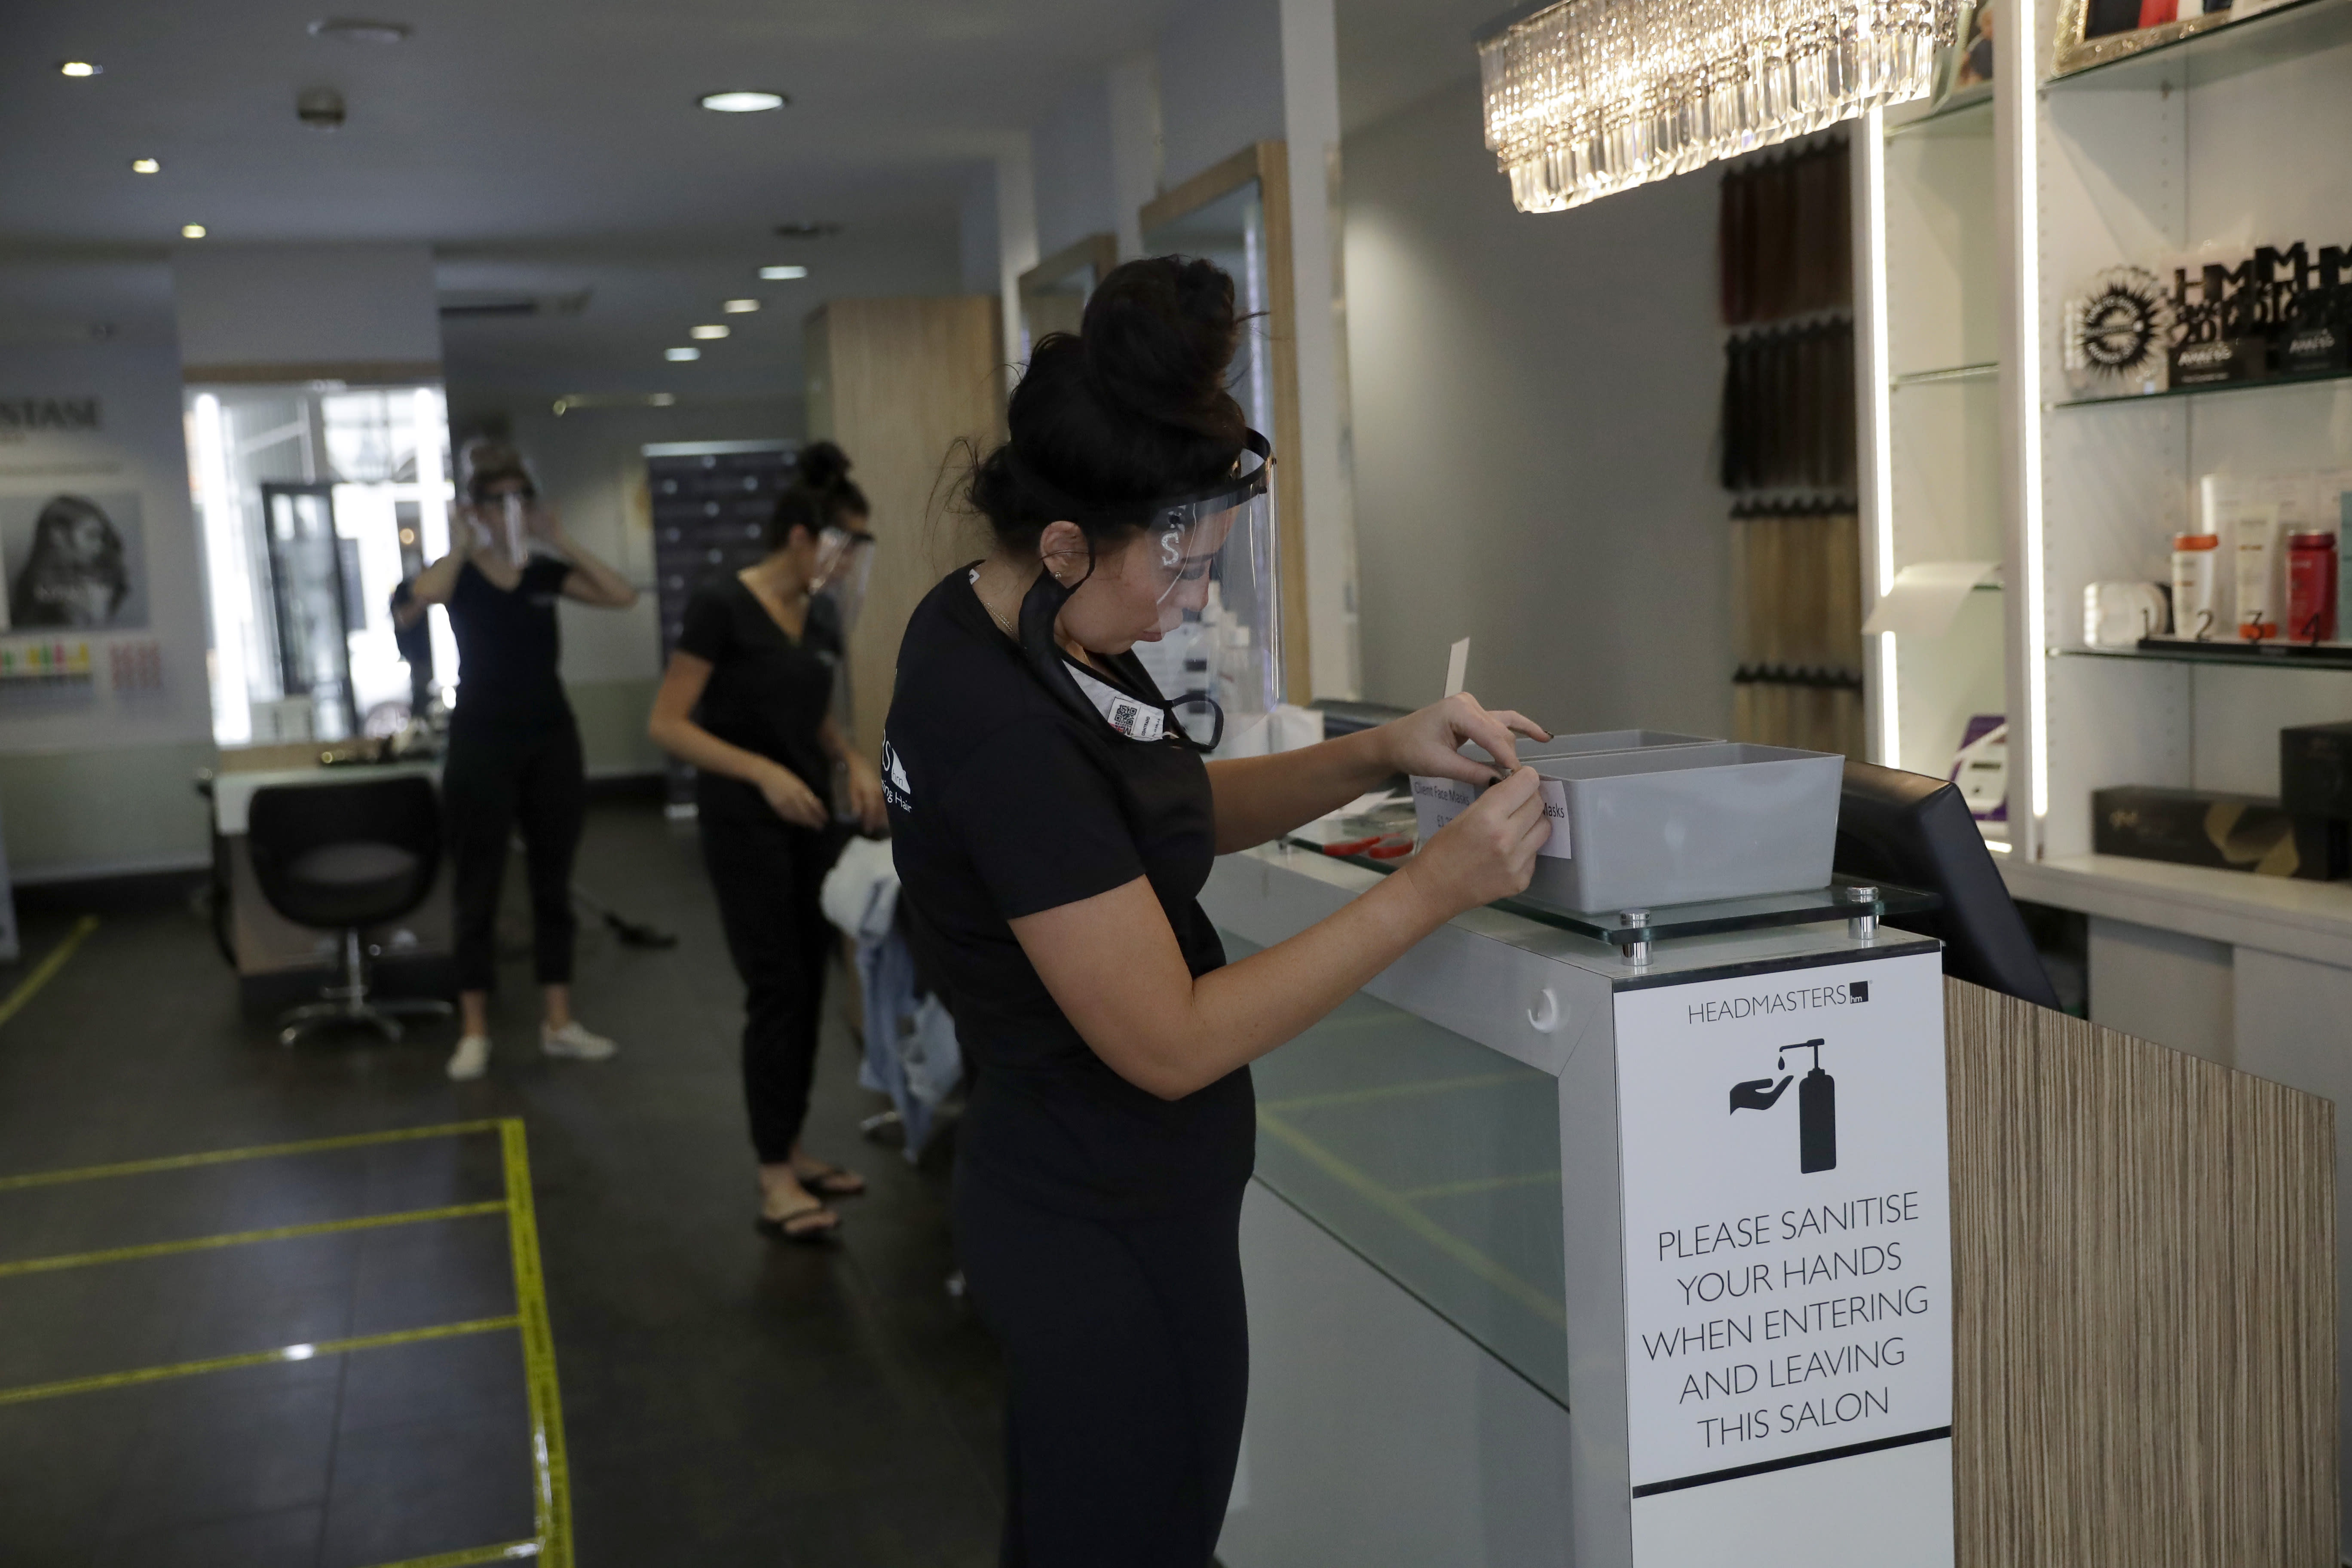 Salon owner Sian Rose Maclaren, right, sticks a label on a box that will house masks clients can buy if they don't already have one, as they prepare to reopen at a franchise branch of the Headmasters group of hairdressing salons, in Surbiton, south west London, Thursday, July 2, 2020. Millions of people in Britain will be able to go to the pub, visit a movie theater, get a haircut or attend a religious service starting July 4, in a major loosening of coronavirus lockdown restrictions. (AP Photo/Matt Dunham)